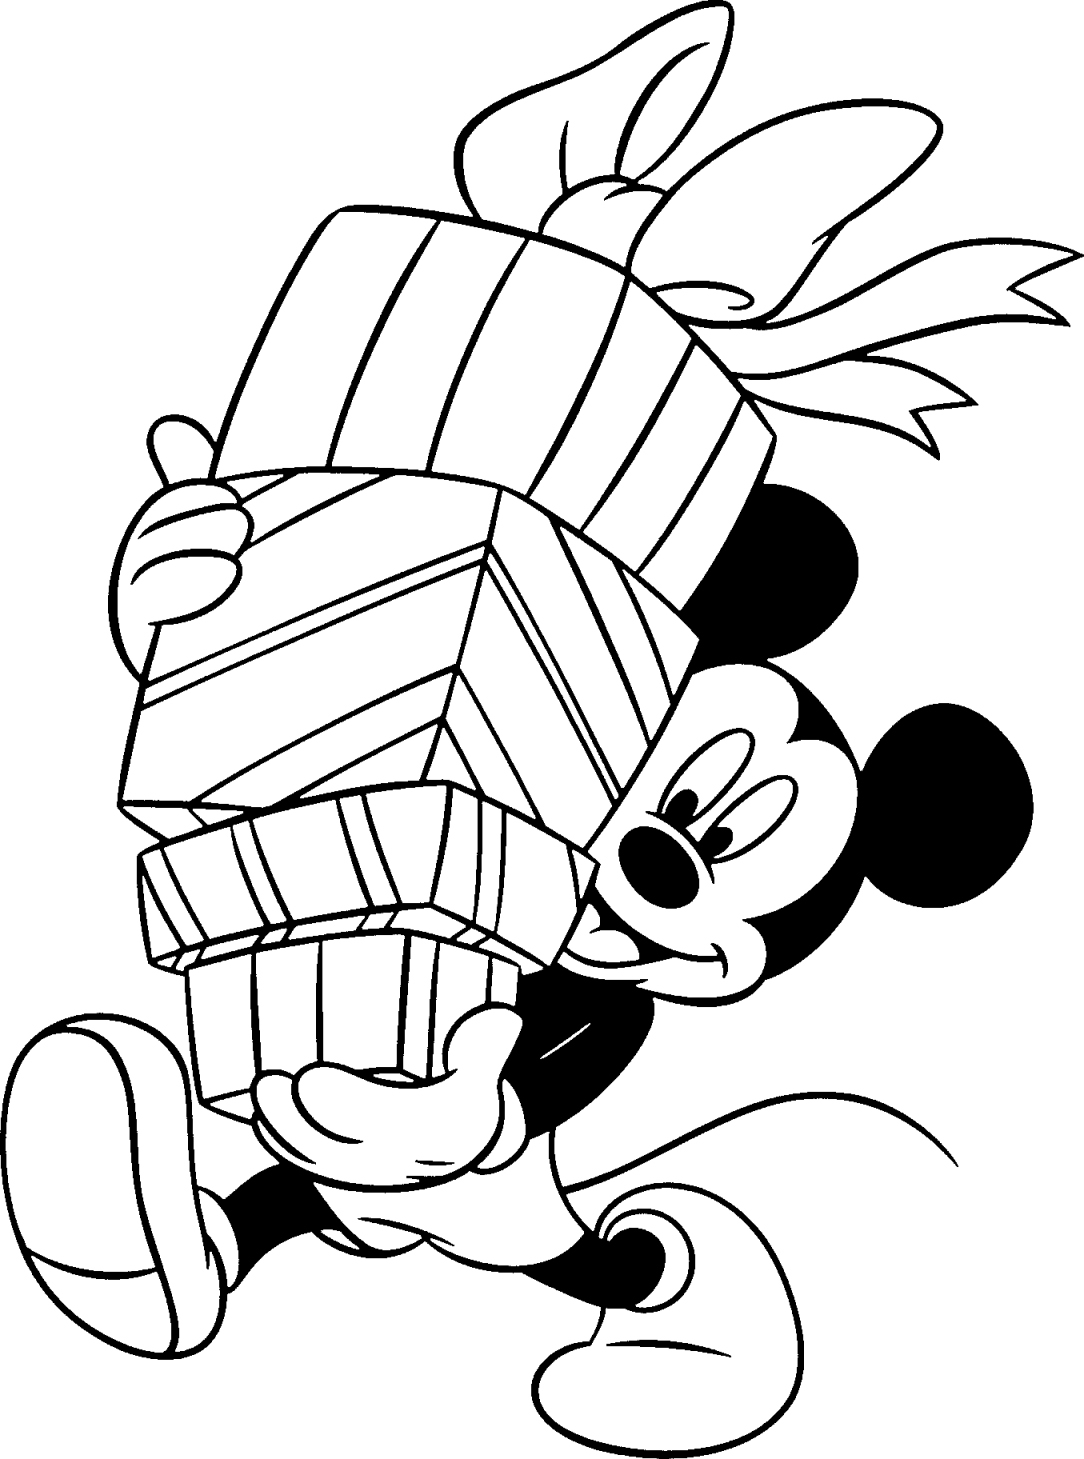 disney coloring pages. Black Bedroom Furniture Sets. Home Design Ideas